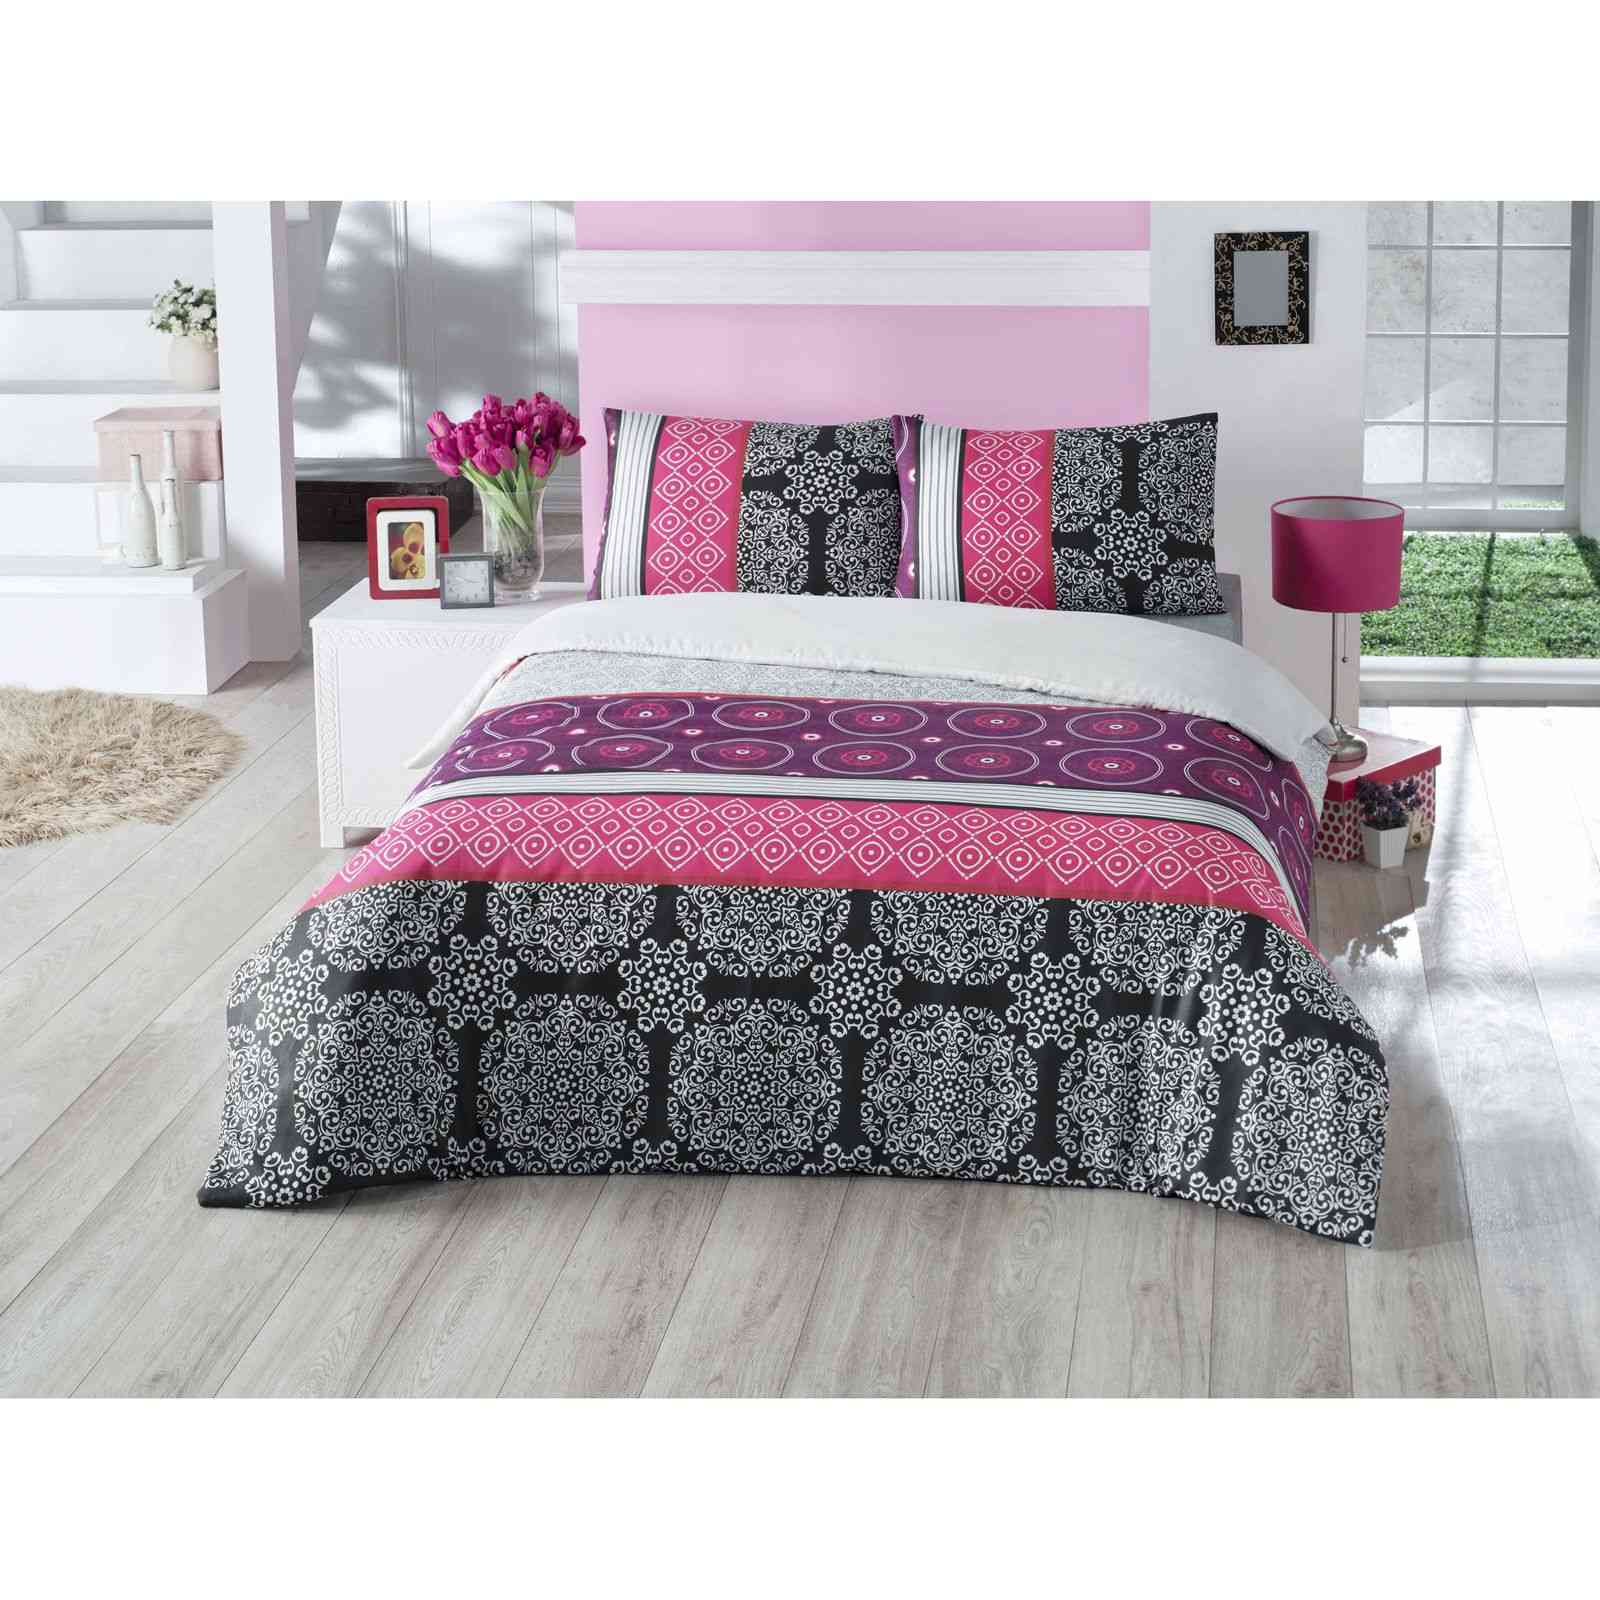 saheser parure de lit rose brandalley. Black Bedroom Furniture Sets. Home Design Ideas